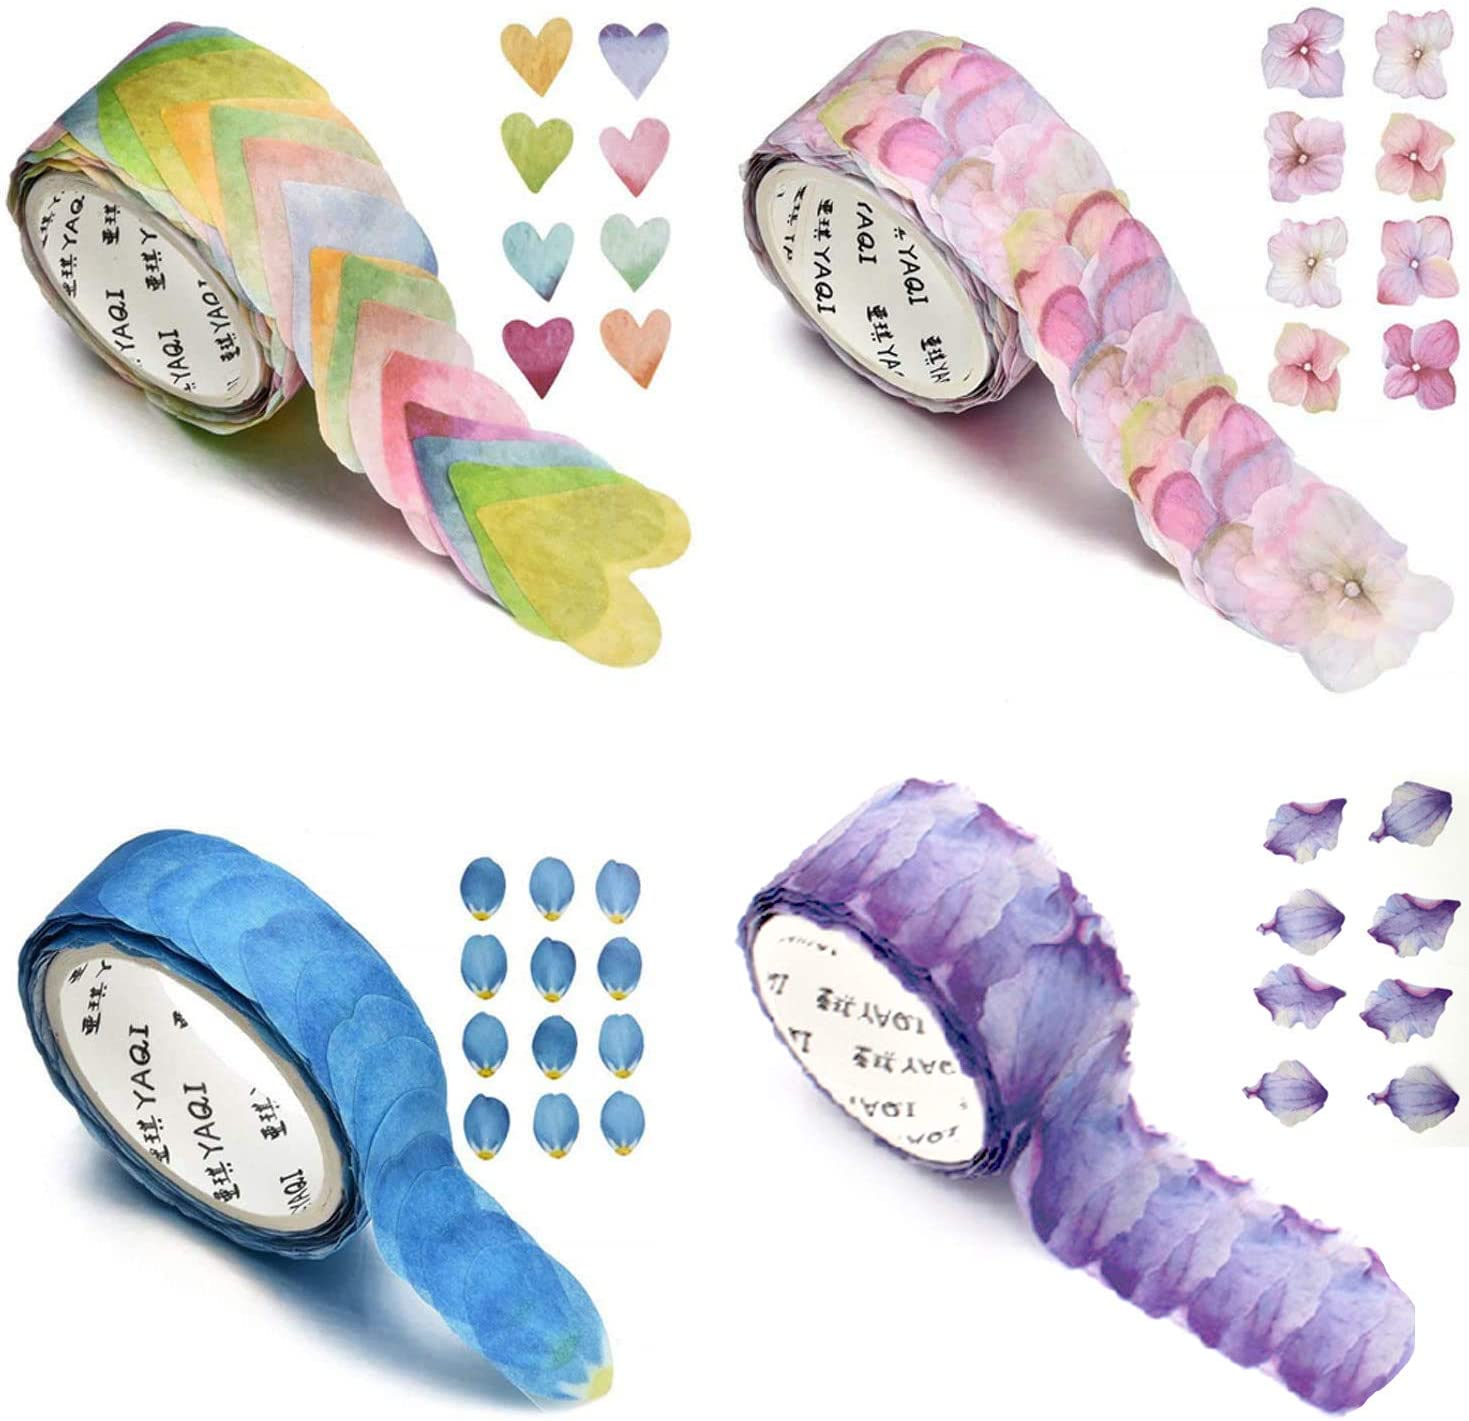 Picasso Flowers Watercolour Washi Tape  For Her  Decoration Tape  Wedding Tape  Masking Tape  Lunarbay Washi Tape